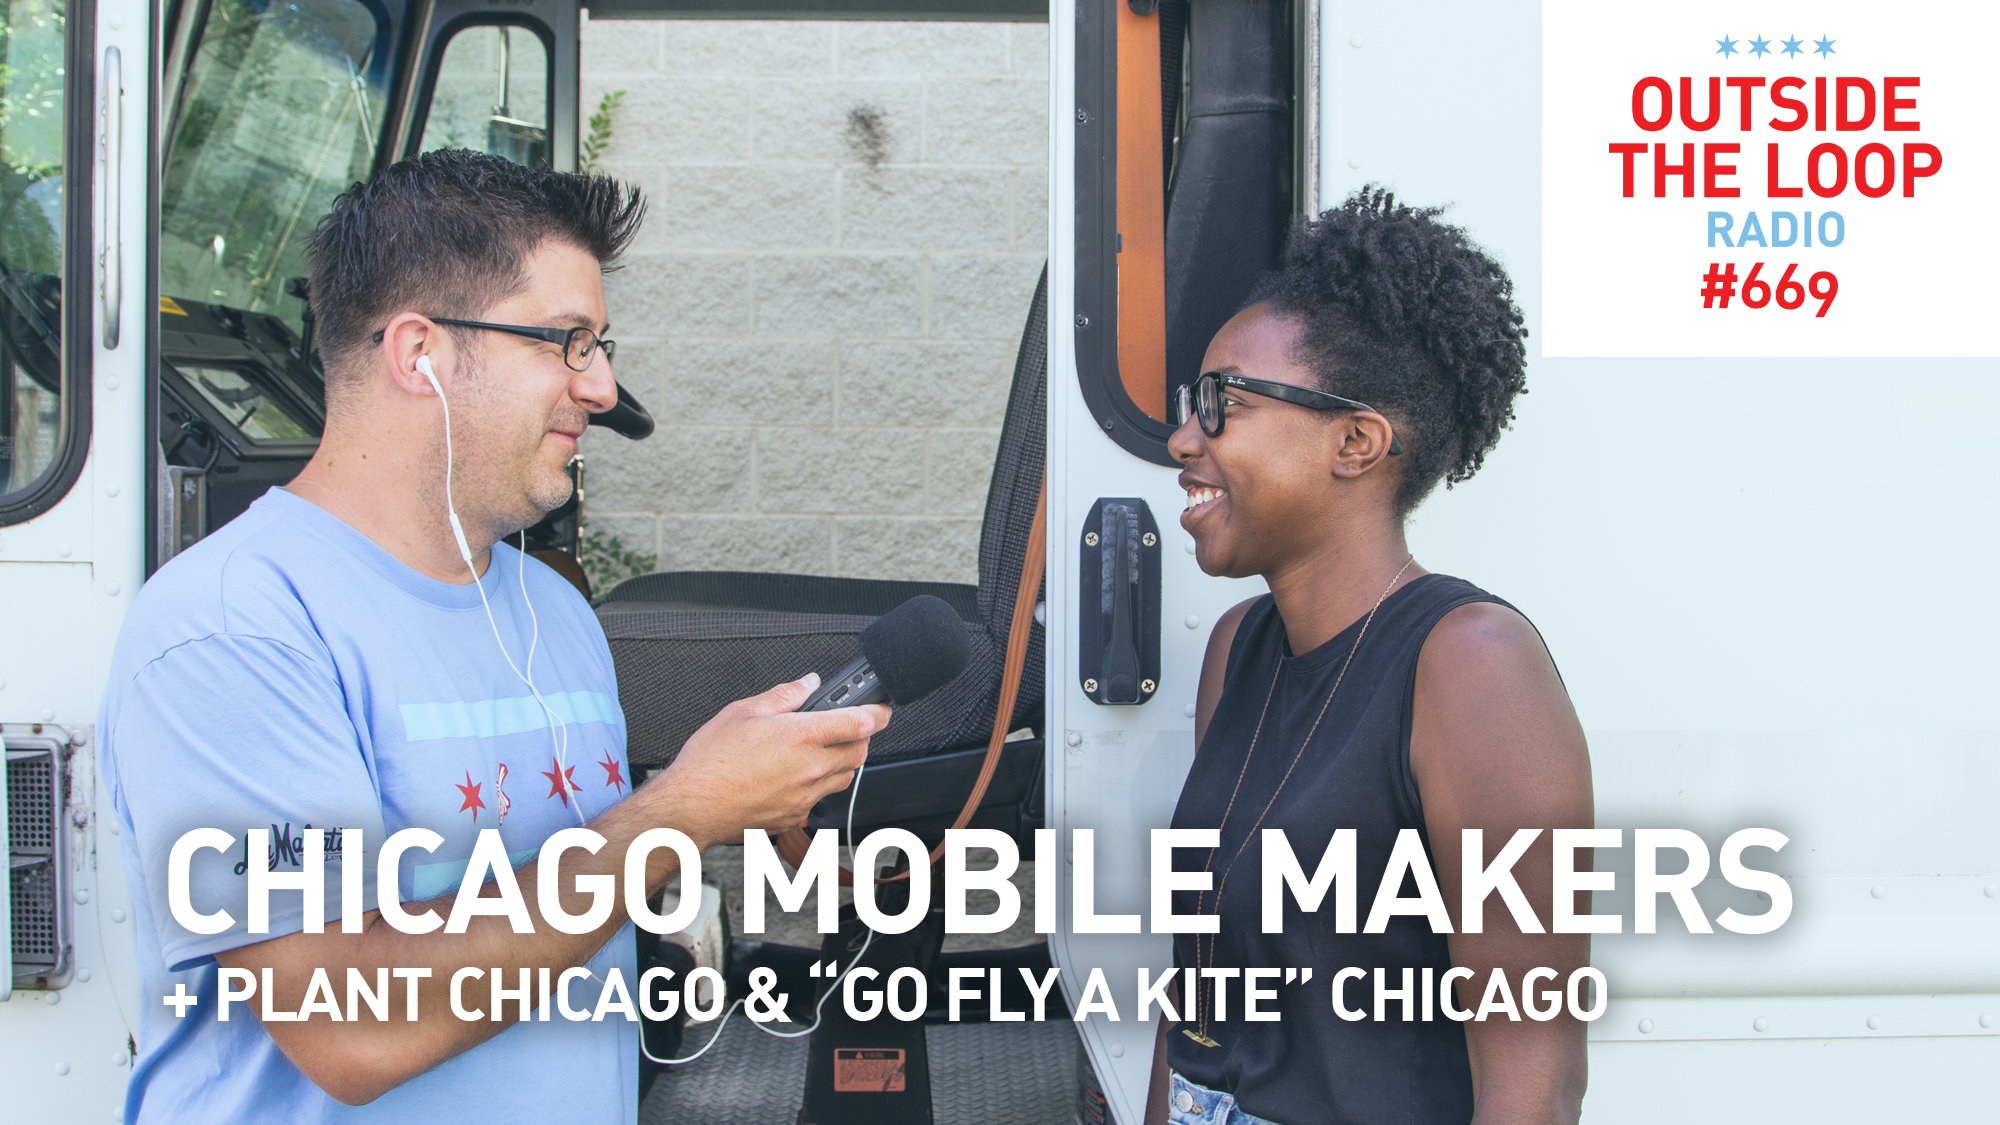 Mike Stephen interviews Chicago Mobile Makers founder Maya Bird-Murphy outside of the future Mobile Maker Van.